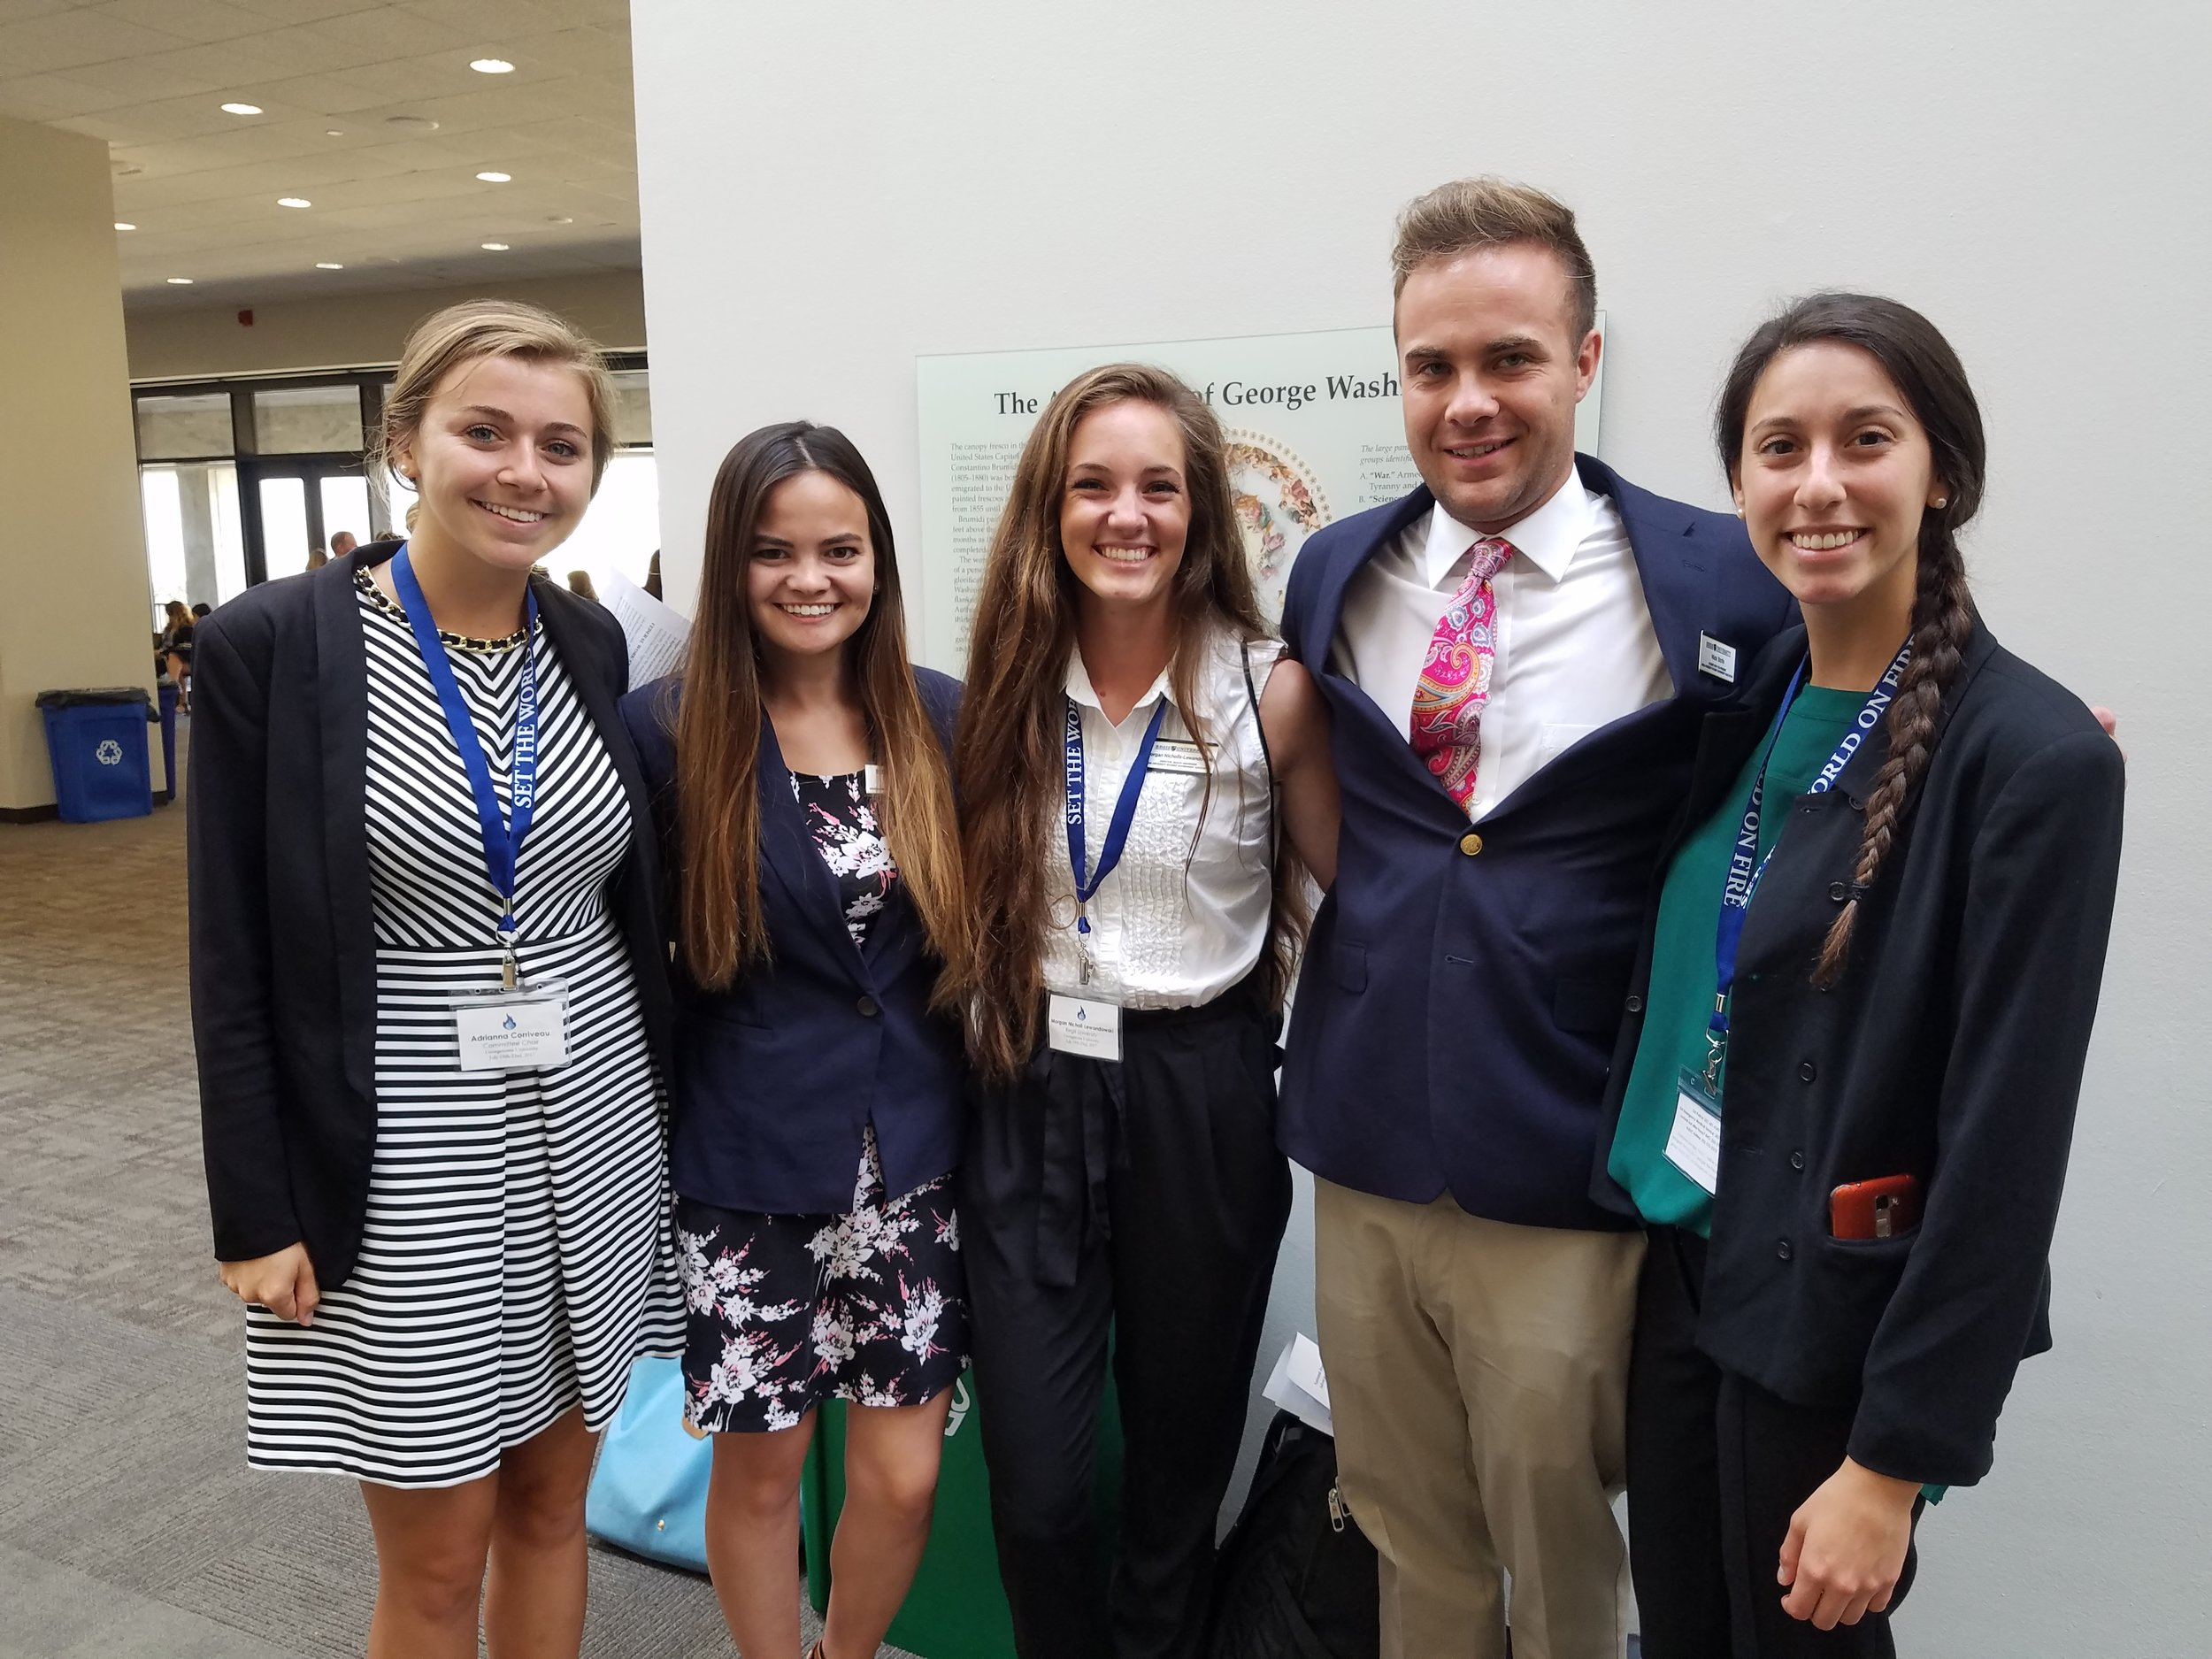 Jesuit Student leaders participated in Advocacy Day on Capitol Hill (Photo by Michael Wieczorek)